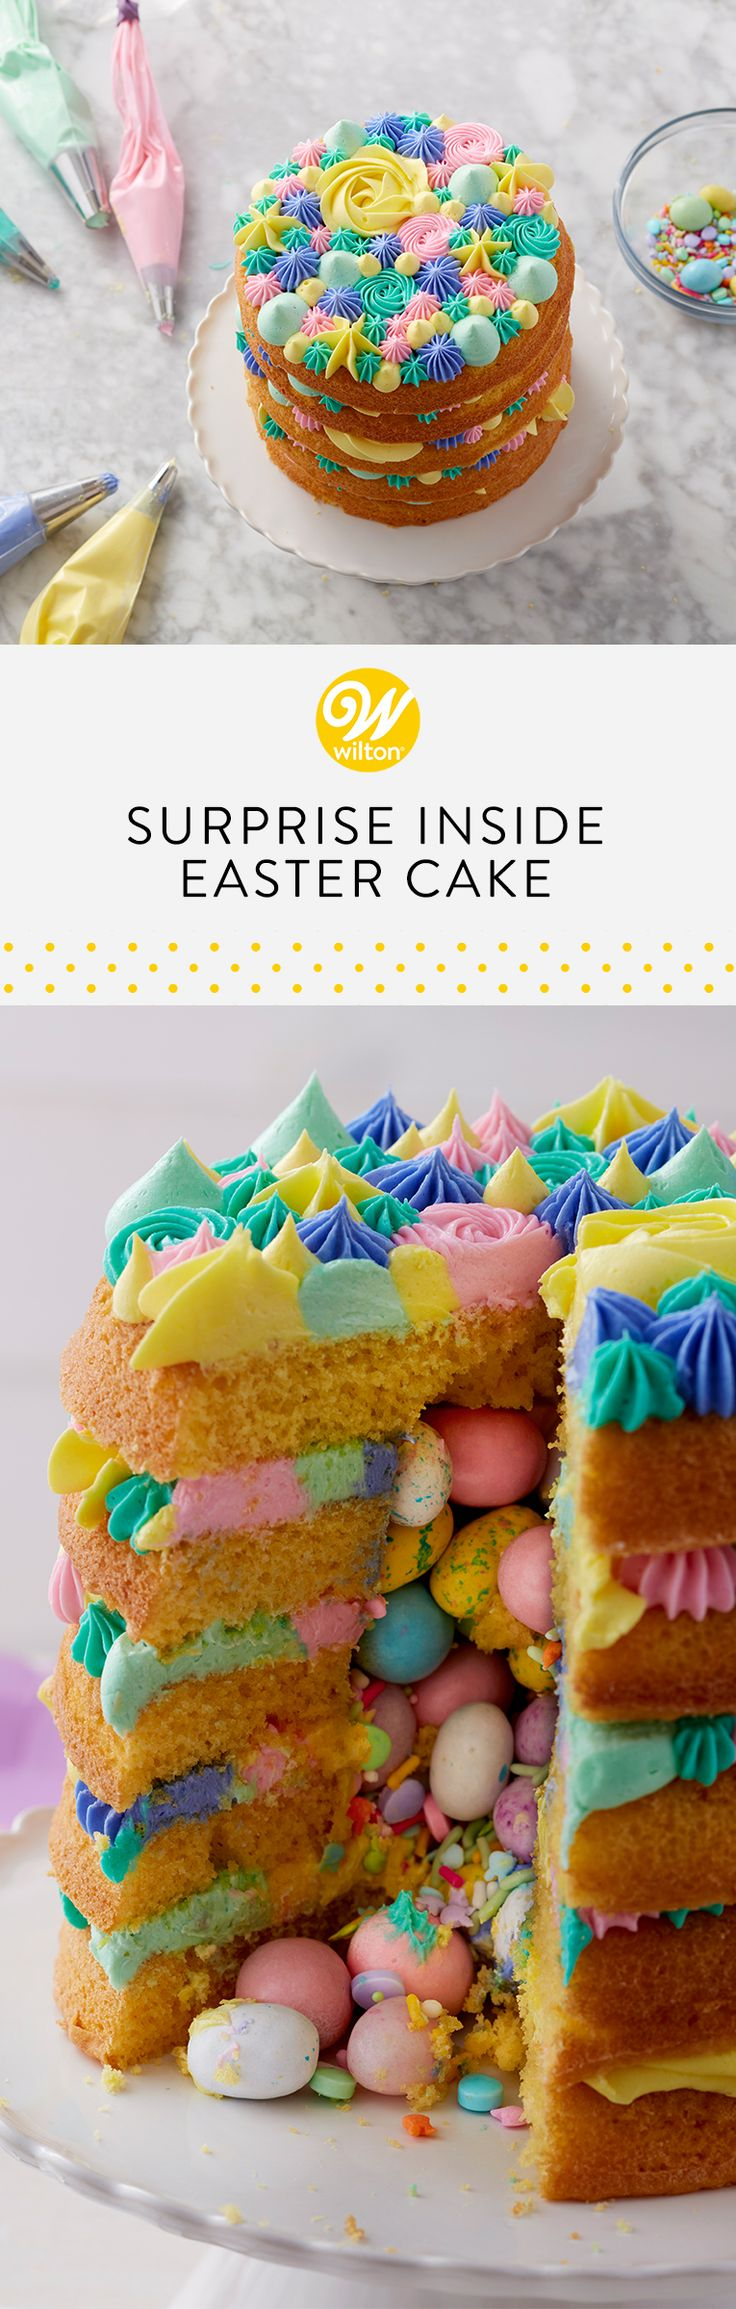 What is more exciting than cutting into a cake and having candy and sprinkles tumble out? Eating it all, of course! This colorful springtime cake will surprise your guests, and be the hit of your Easter sweet table. #wiltoncakes #cakes #cakeideas #surprisecake #candy #sprinkles #easter #eastercakes #easterideas #easterdesserts #buttercream #piping #wiltontips #inspiration